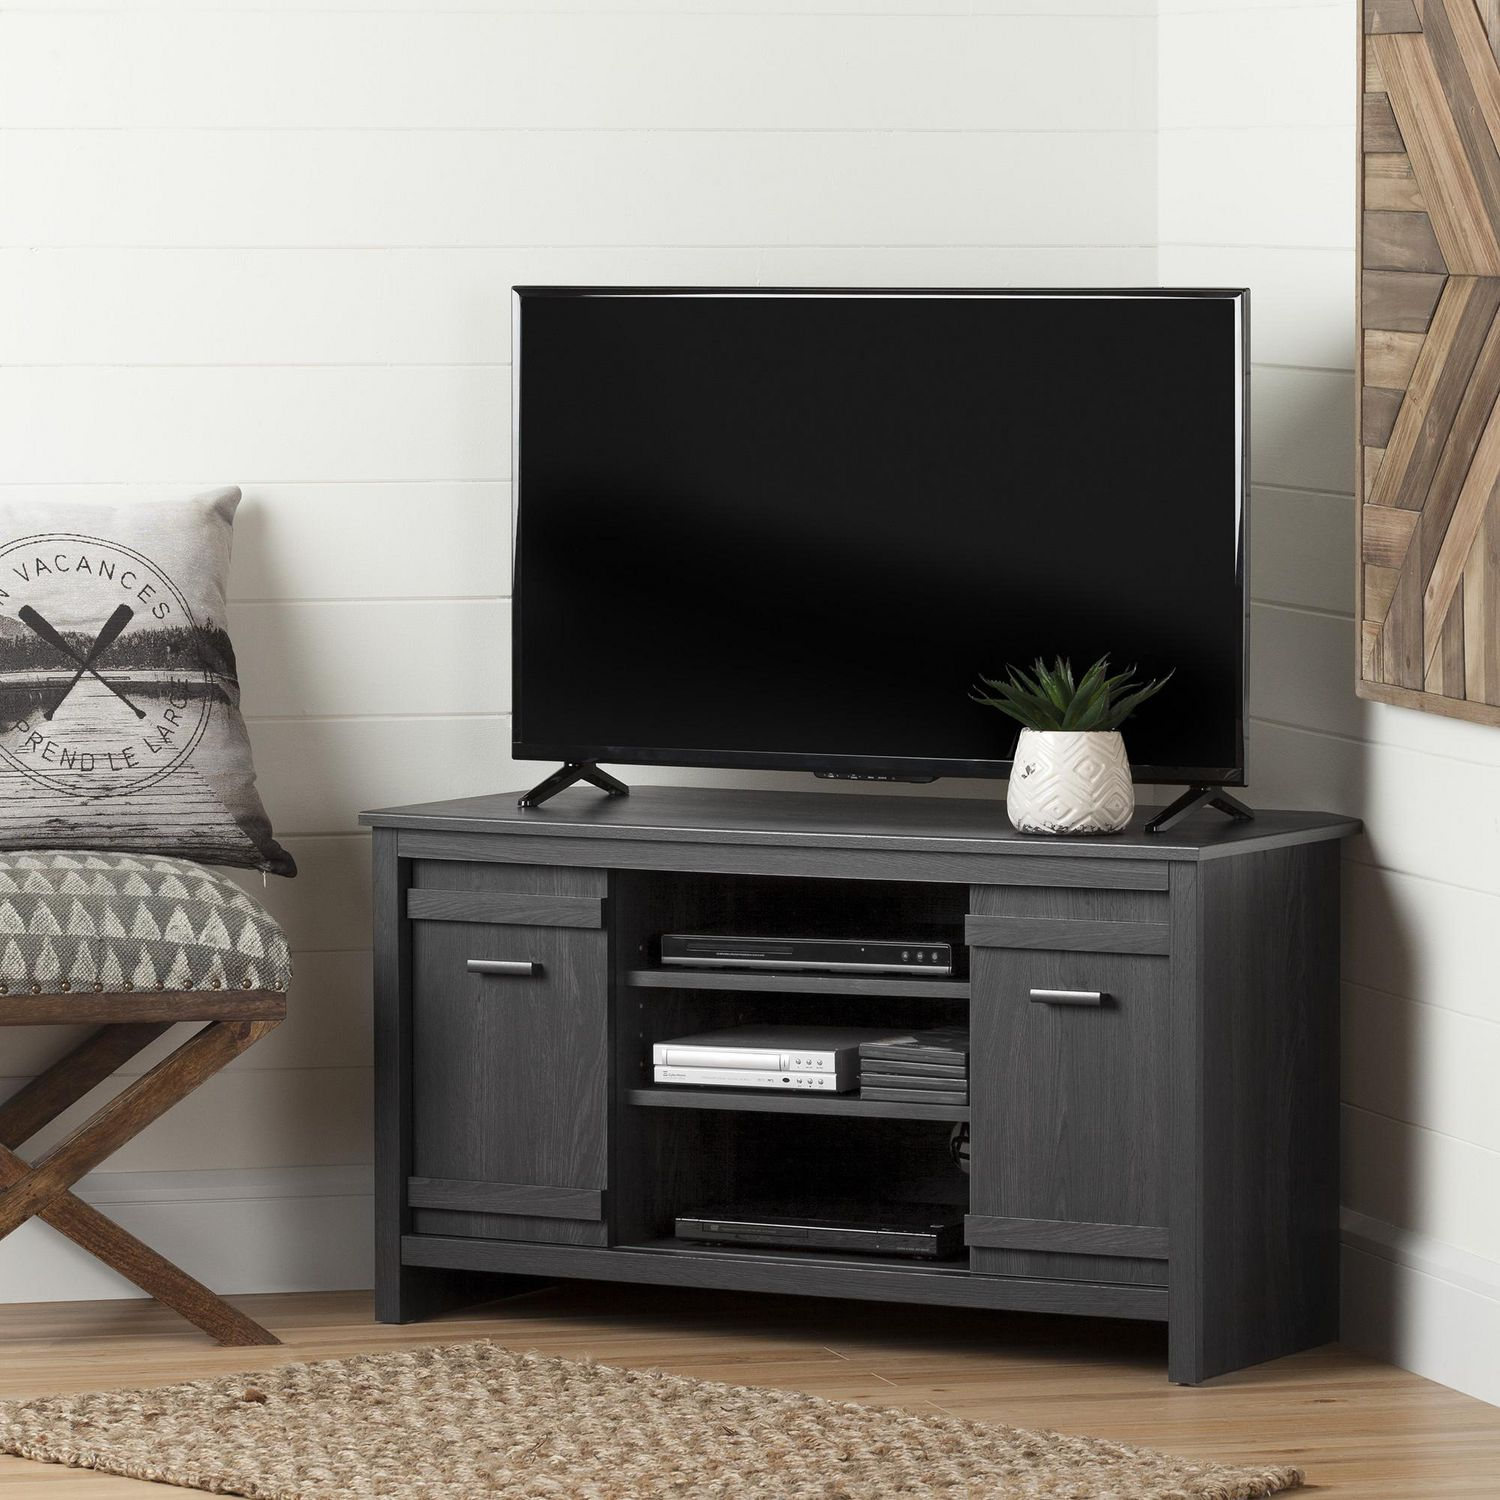 South Shore Exhibit Corner Tv Stand For Tvs Up To 42 Gray Oak  # Meuble De Coin Tv